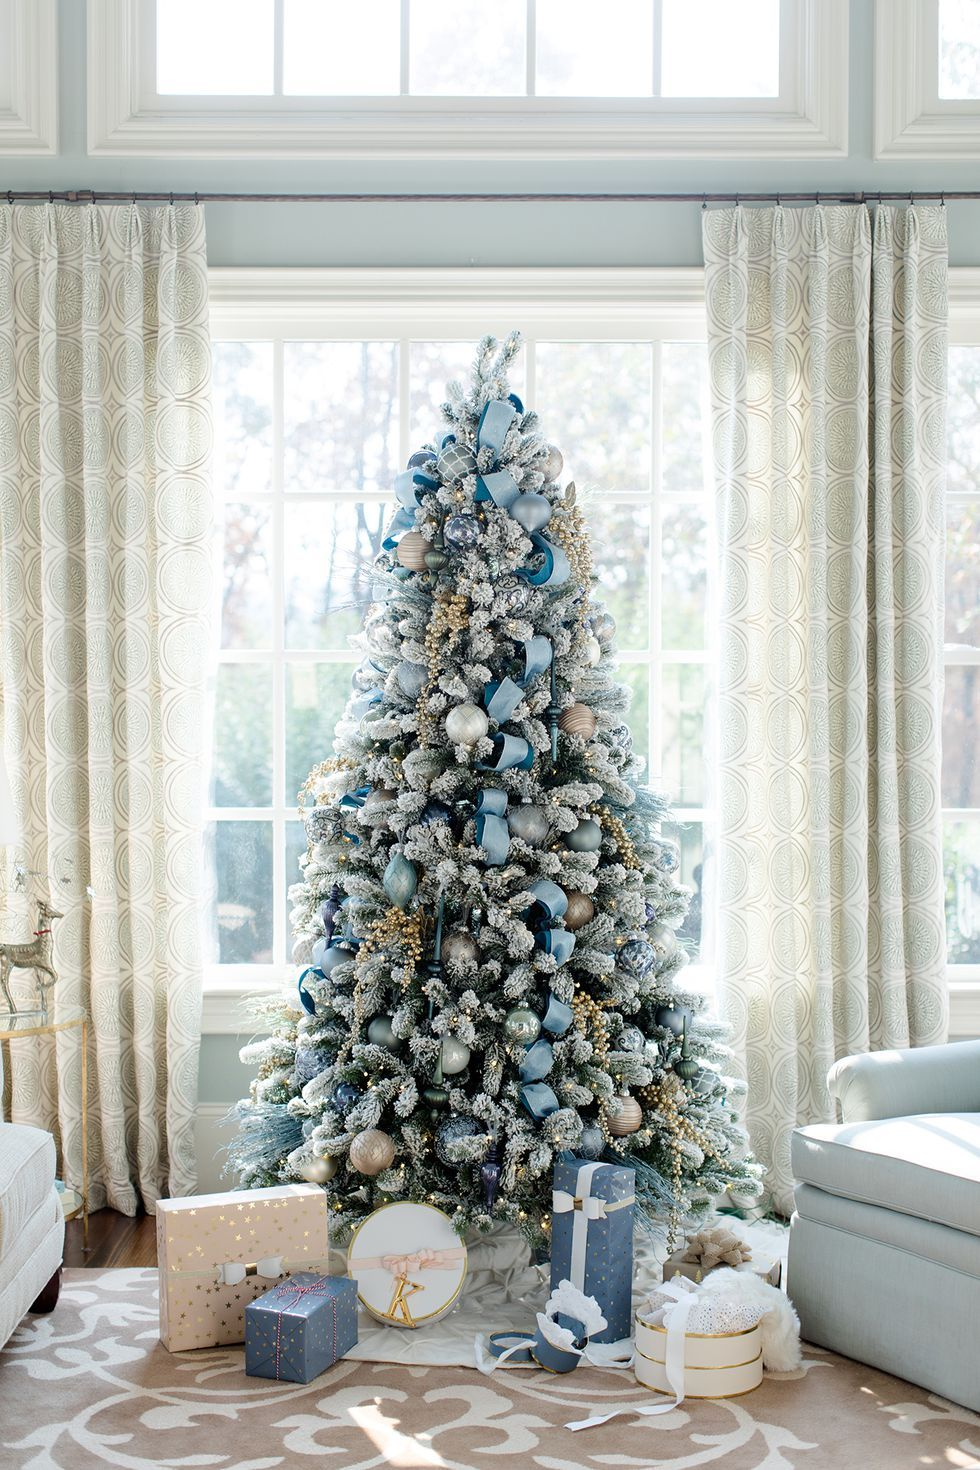 10 Lovely Christmas Tree Theme Ideas - Elegant Themed Christmas Trees